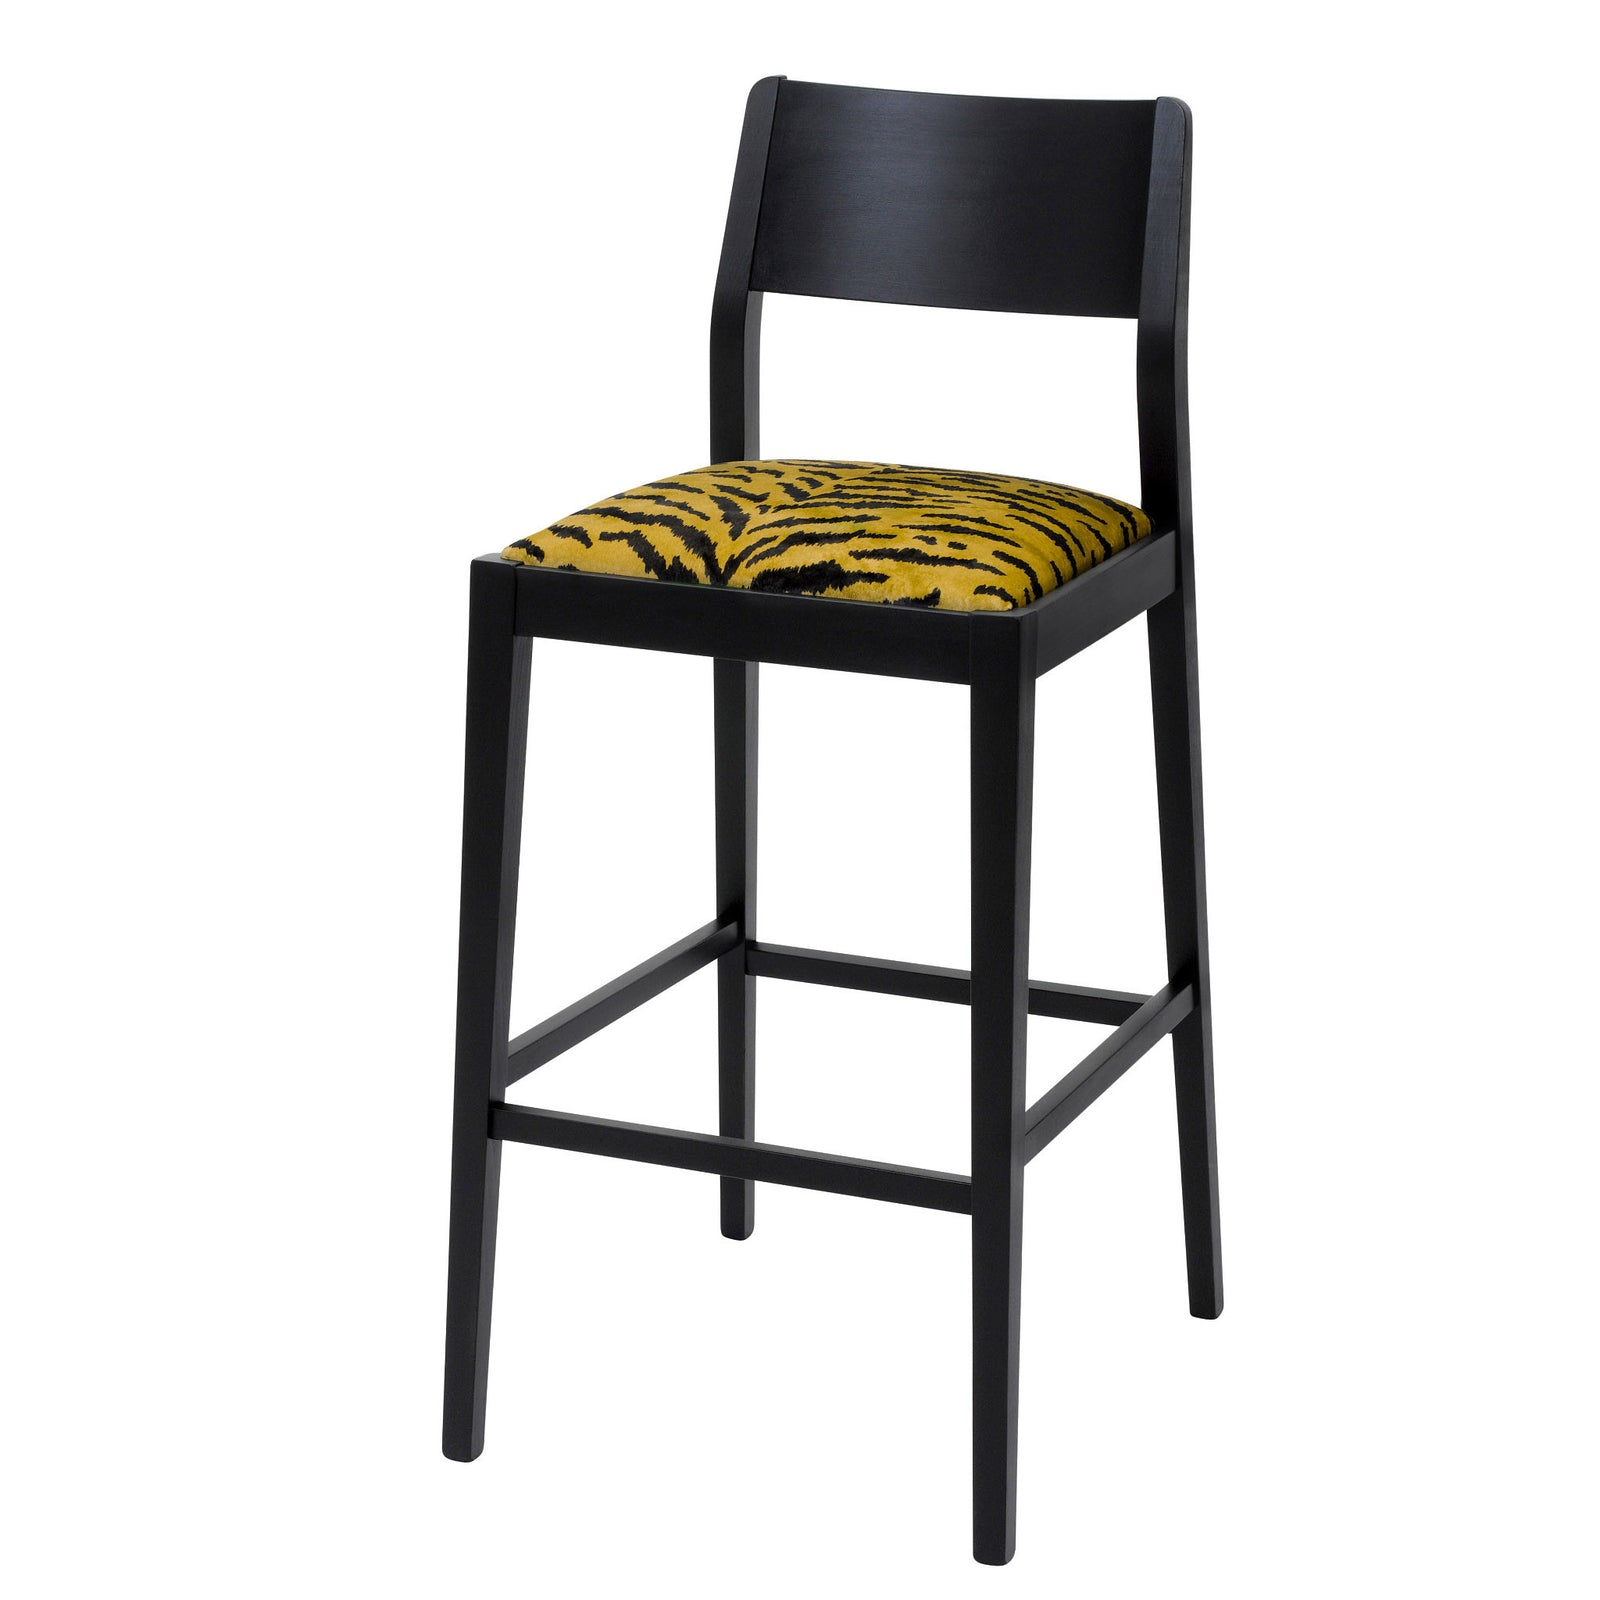 The Jack designer bar stool upholstered with the tigre design from the House of Hackney on luxury British velvet and silk finished in Jack black eggshell.